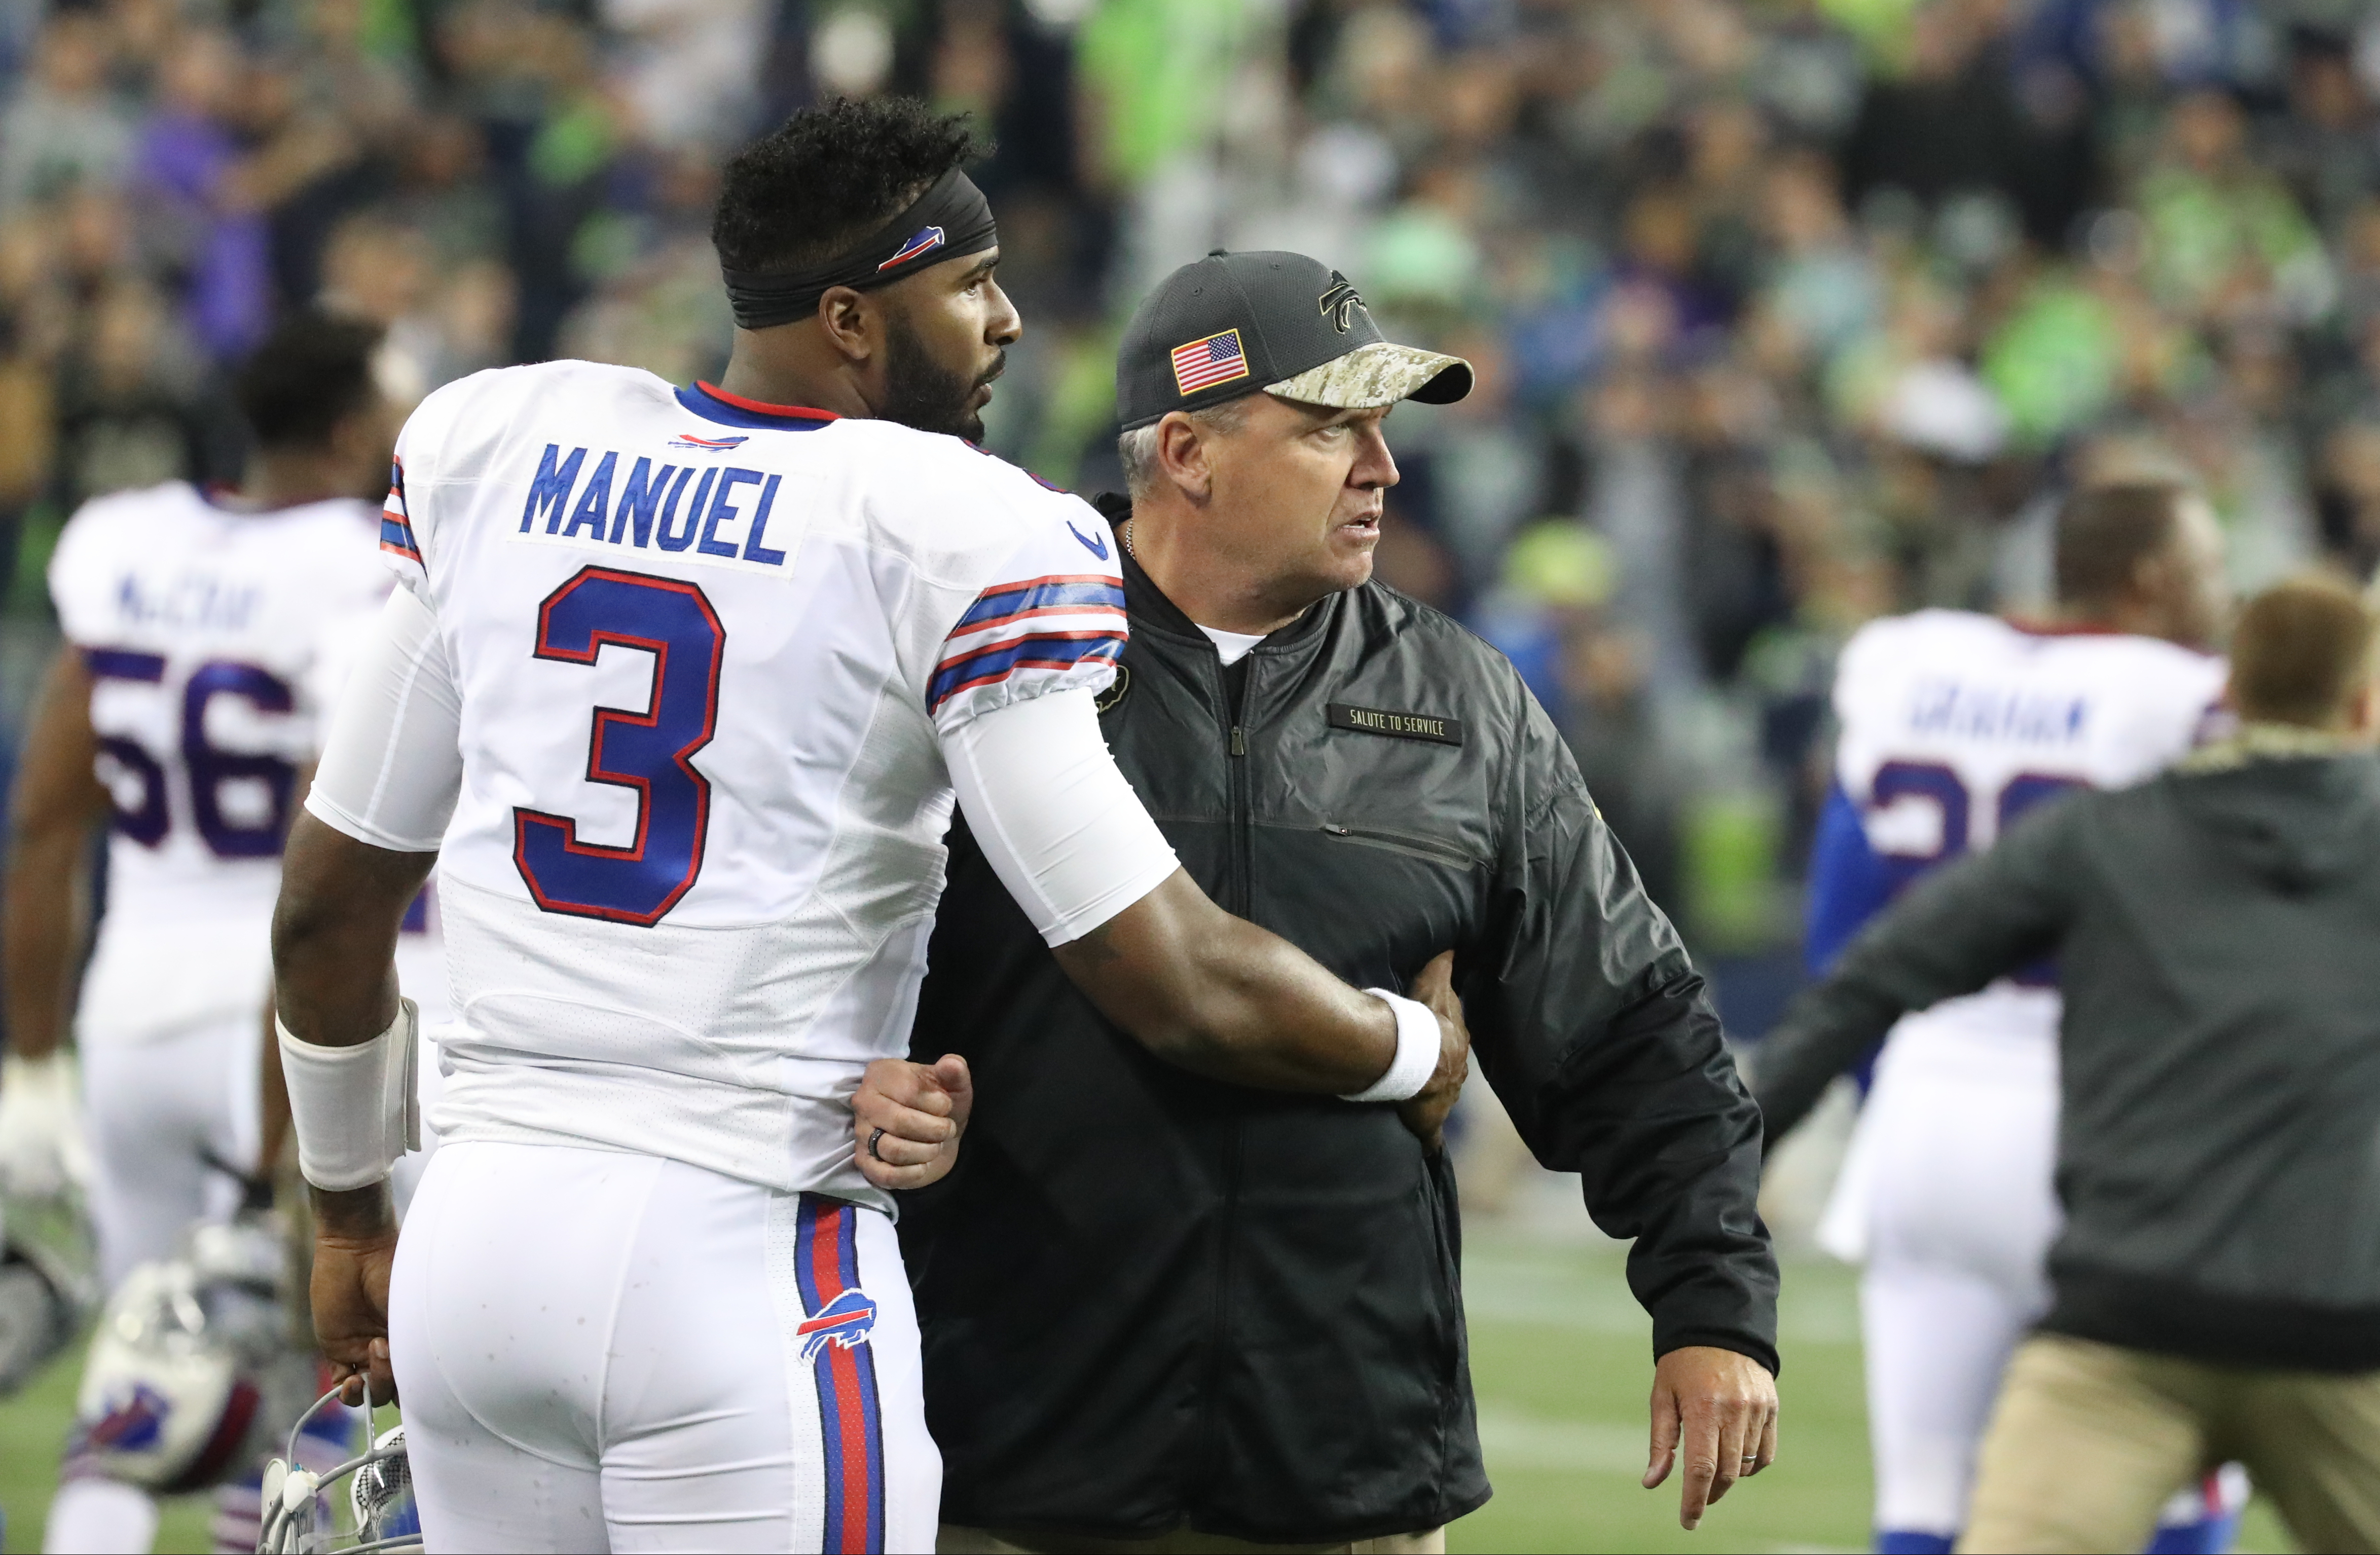 Buffalo Bills quarterback EJ Manuel (3) holds back Buffalo Bills head coach Rex Ryan at the end of the first half of a game against the Seattle Seahawks at CenturyLink Field in Seattle on Monday, Nov.  7, 2016.  (James P. McCoy/Buffalo News)